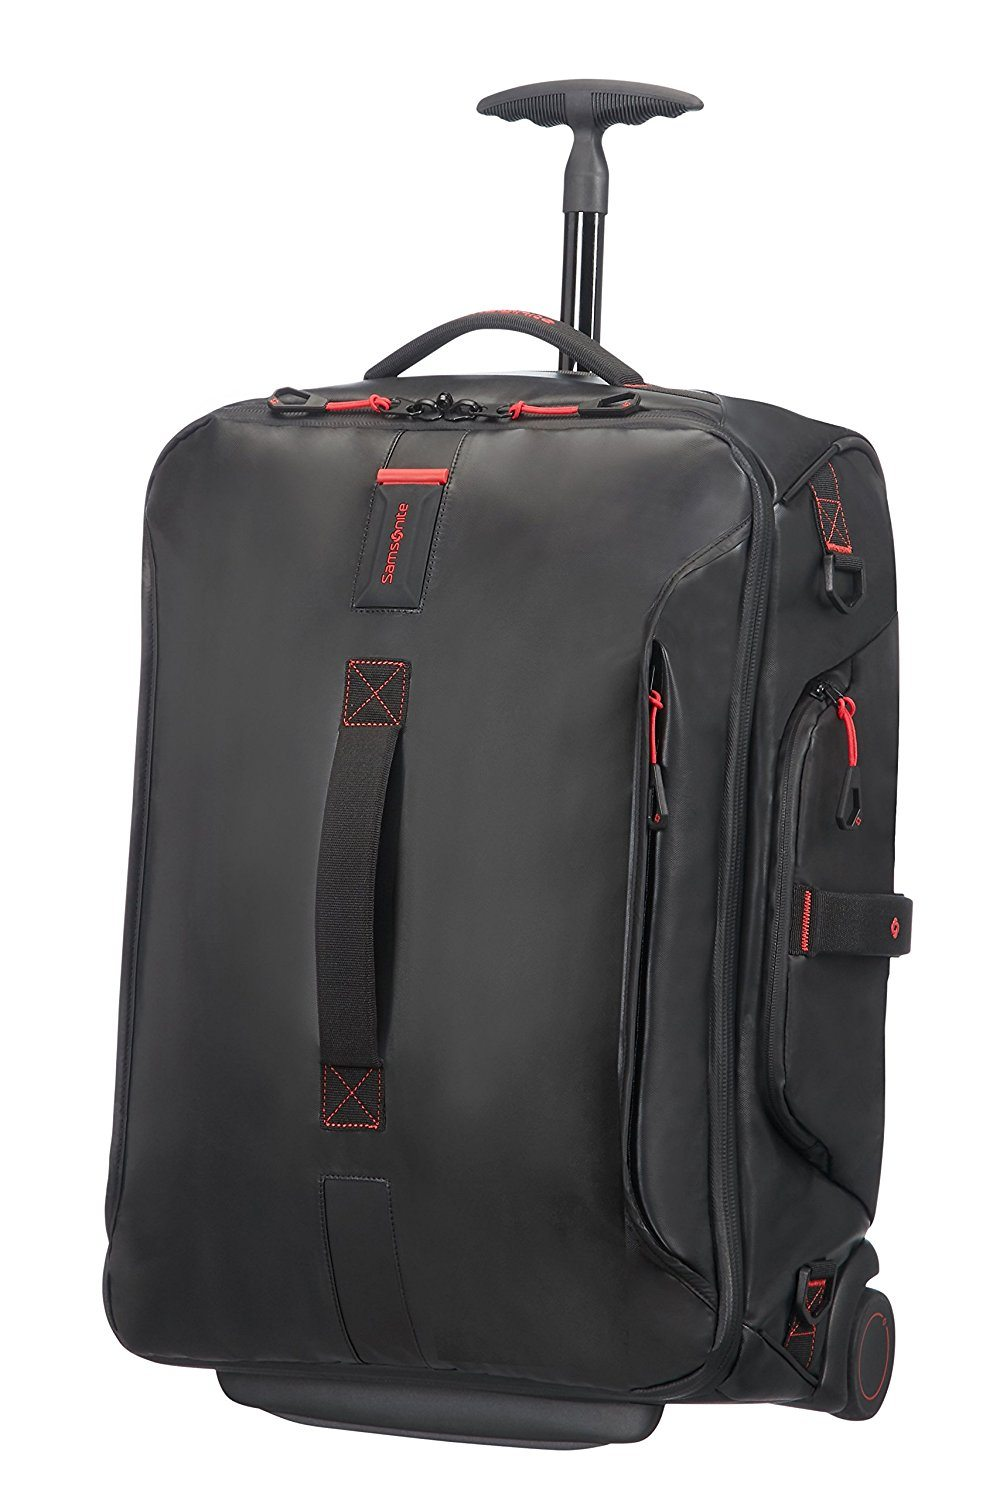 Samsonite Paradiver Light Duffle black colour